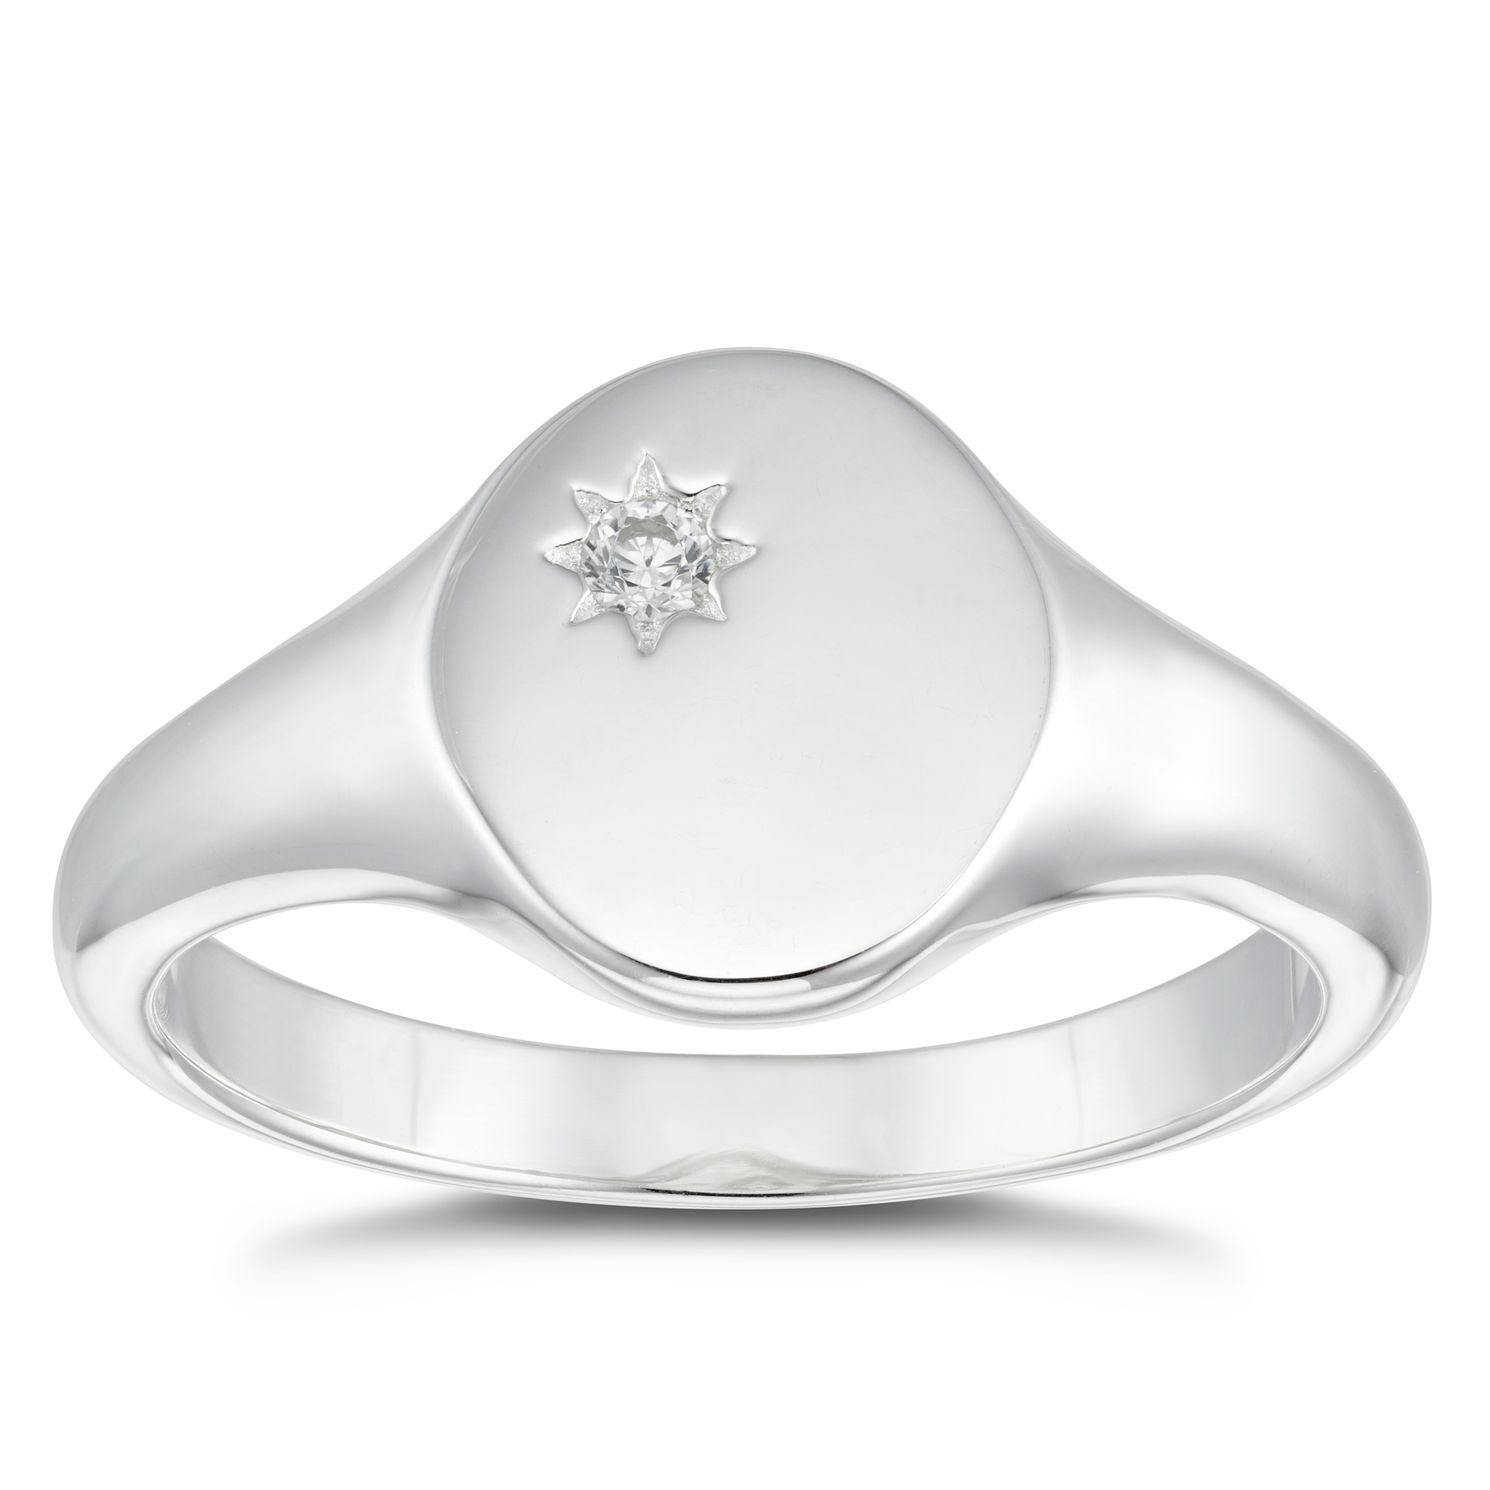 Silver Cubic Zirconia Round Signet Ring - Size N - Product number 4819926